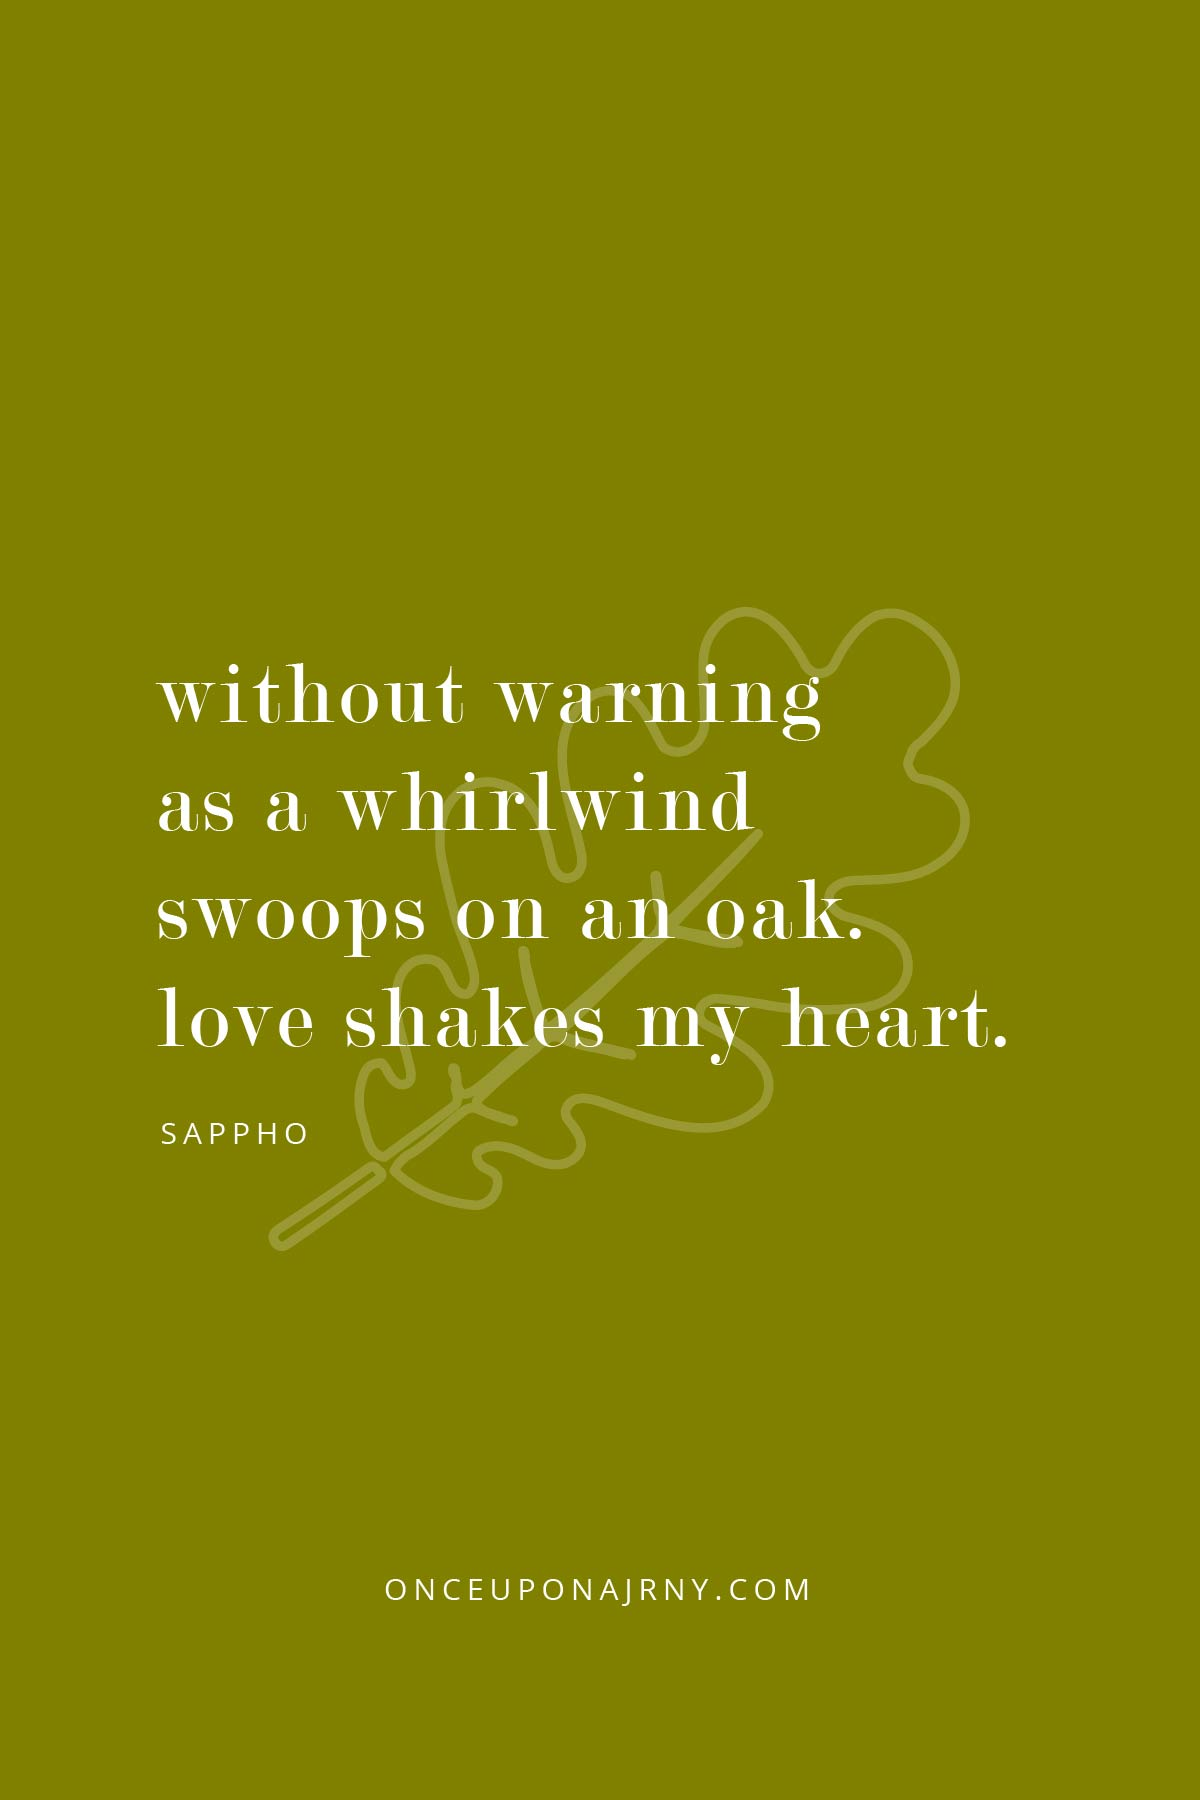 Without warning as a whirlwind swoops on an oak. Love shakes my heart. - Sappho lesbian quotes